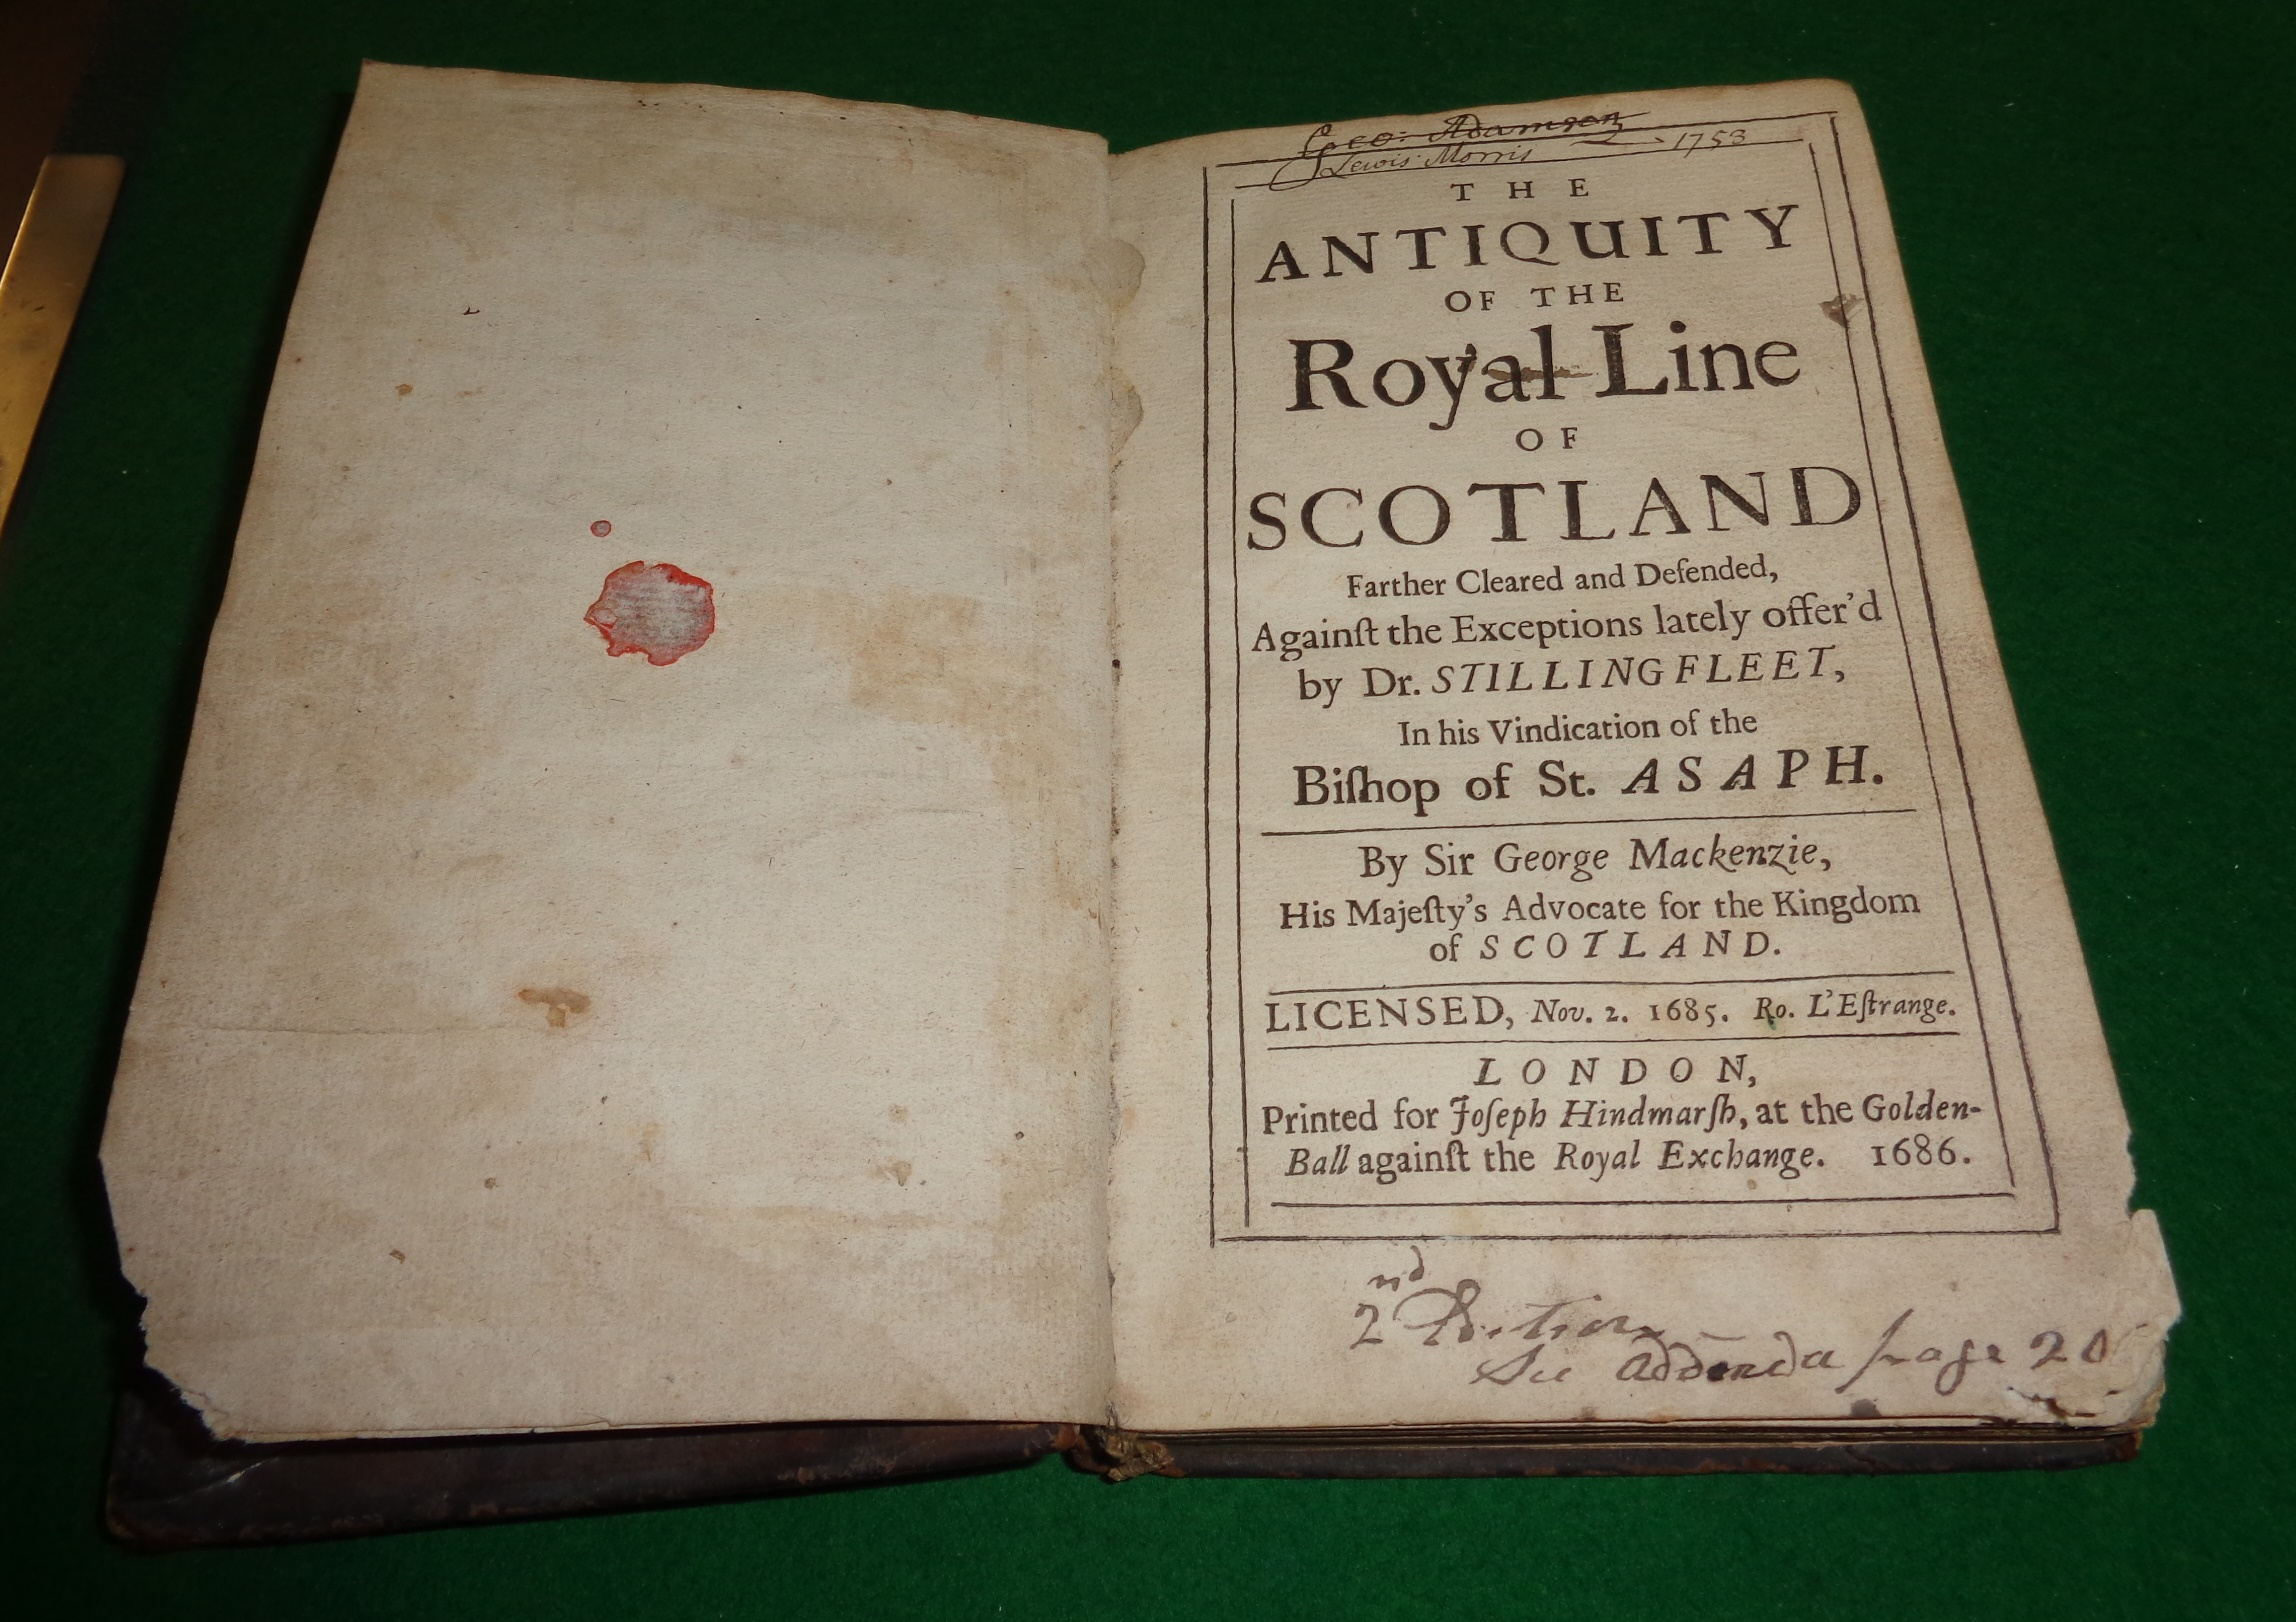 Lot 233 - 'The Antiquity of the Royal Line of Scotland', 1685 by Sir George Mackenzie, printed for Joseph